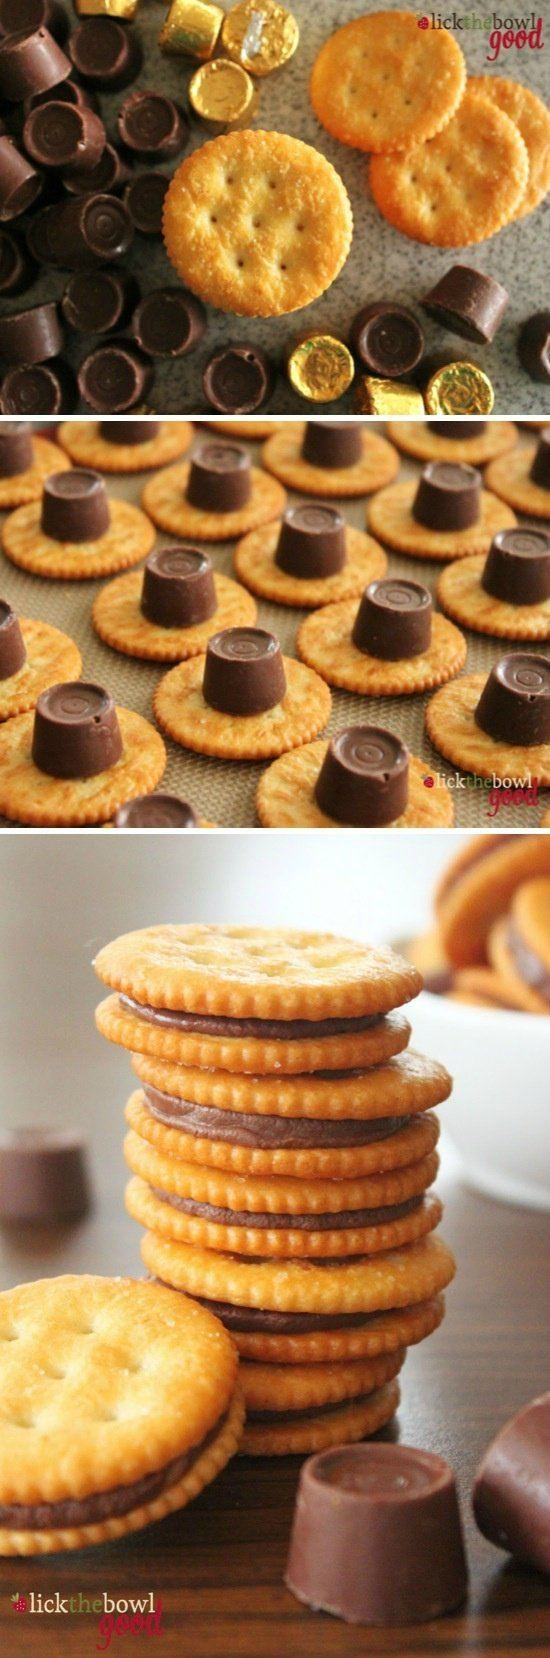 Galletas con chocolate - lickthebowlgood.blogspot.com - Rolo Stuffed Ritz Crackers